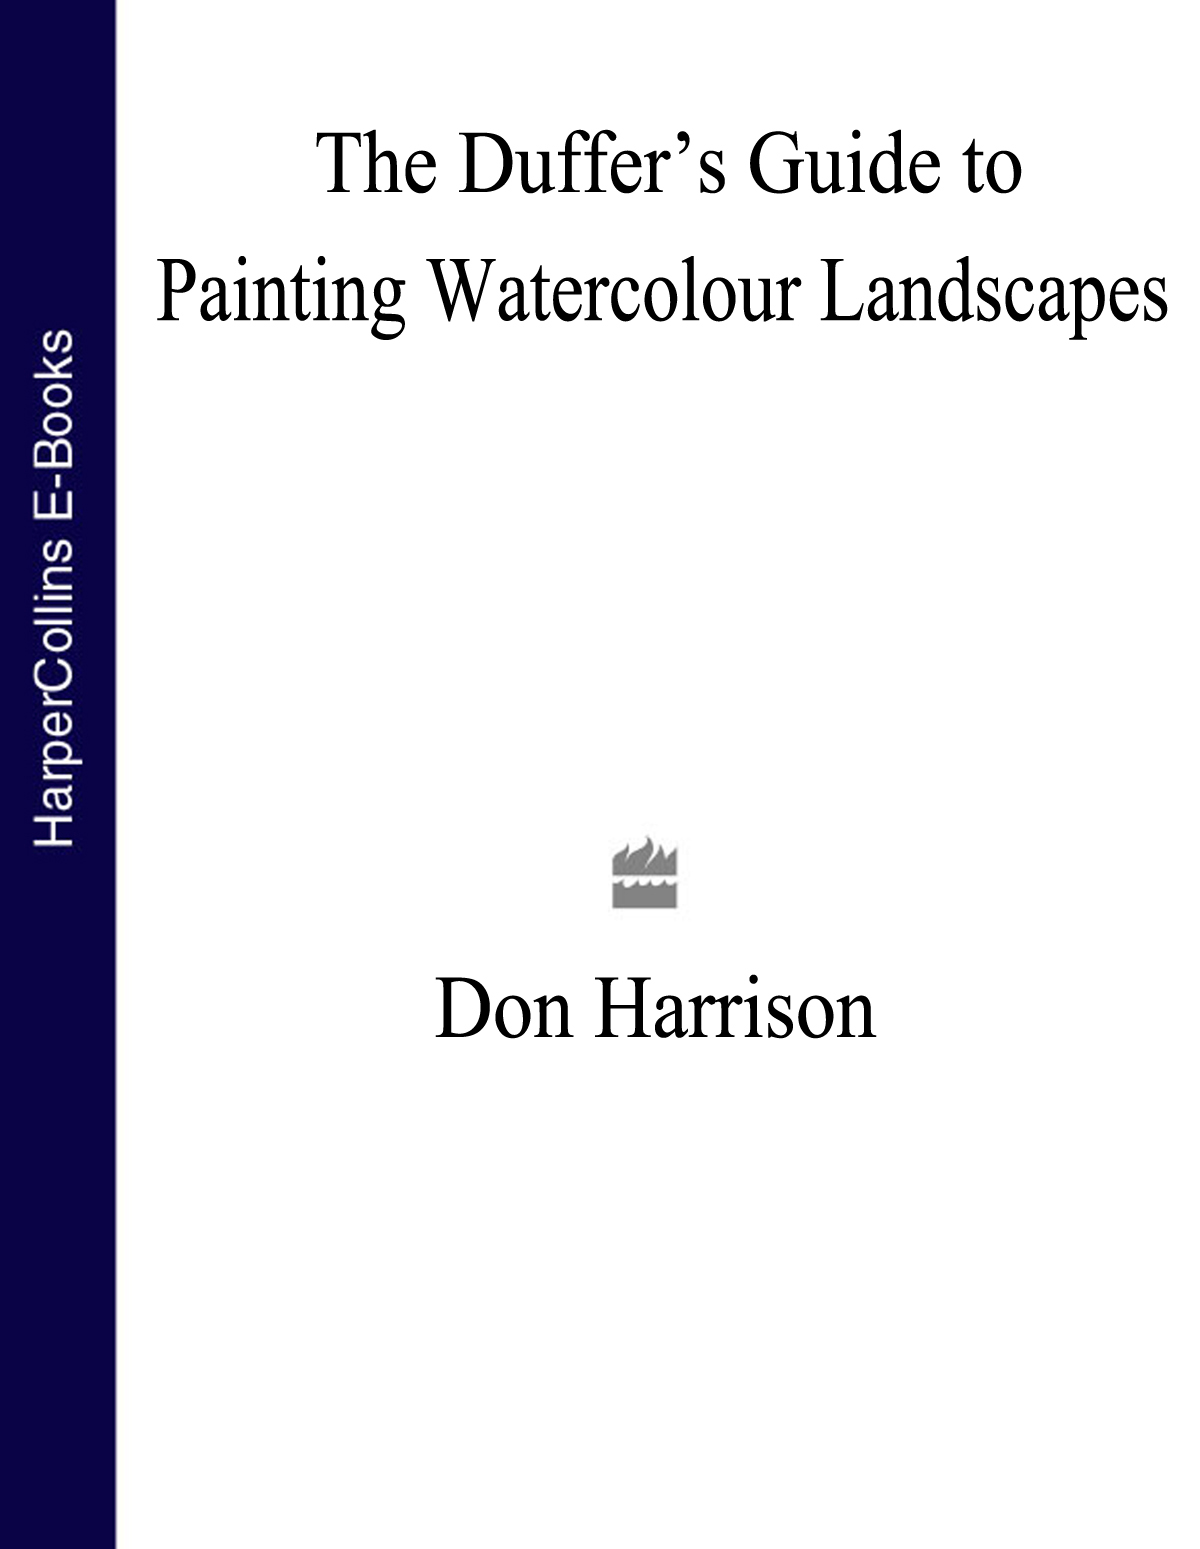 Купить книгу The Duffer's Guide to Painting Watercolour Landscapes, автора Don  Harrison